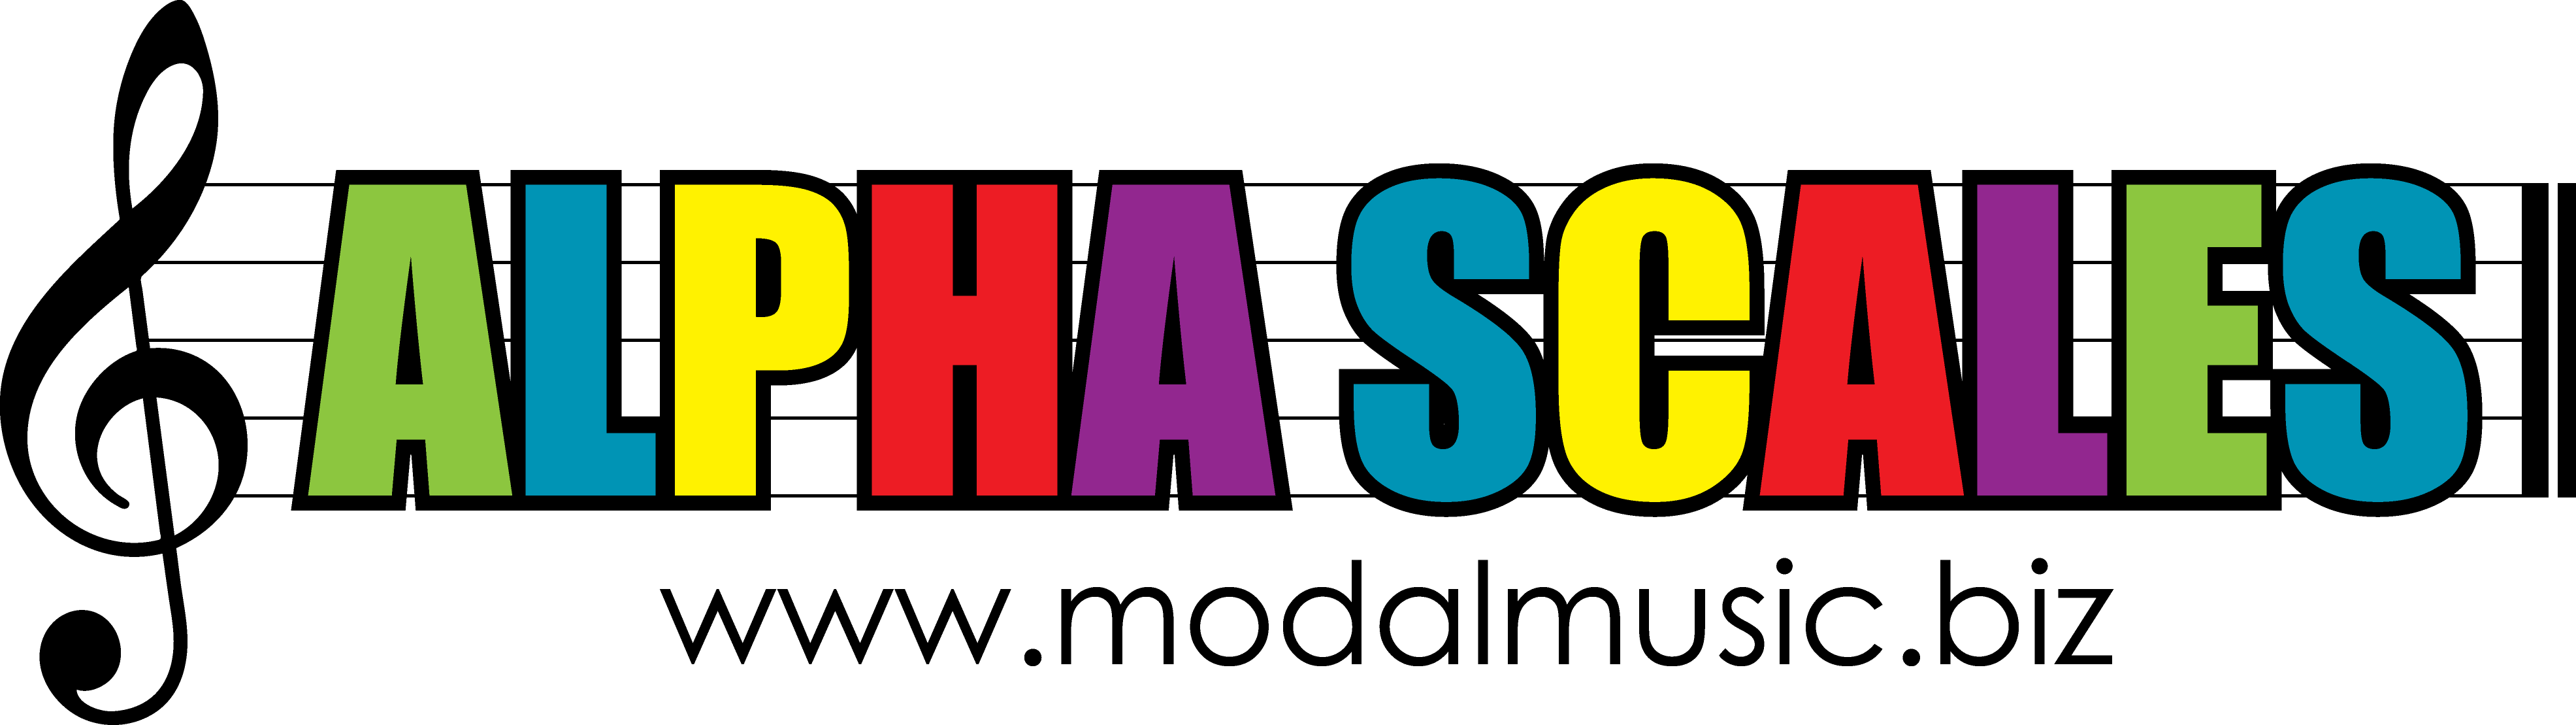 AlphaScales - Music-Based Resource for Education - Logo